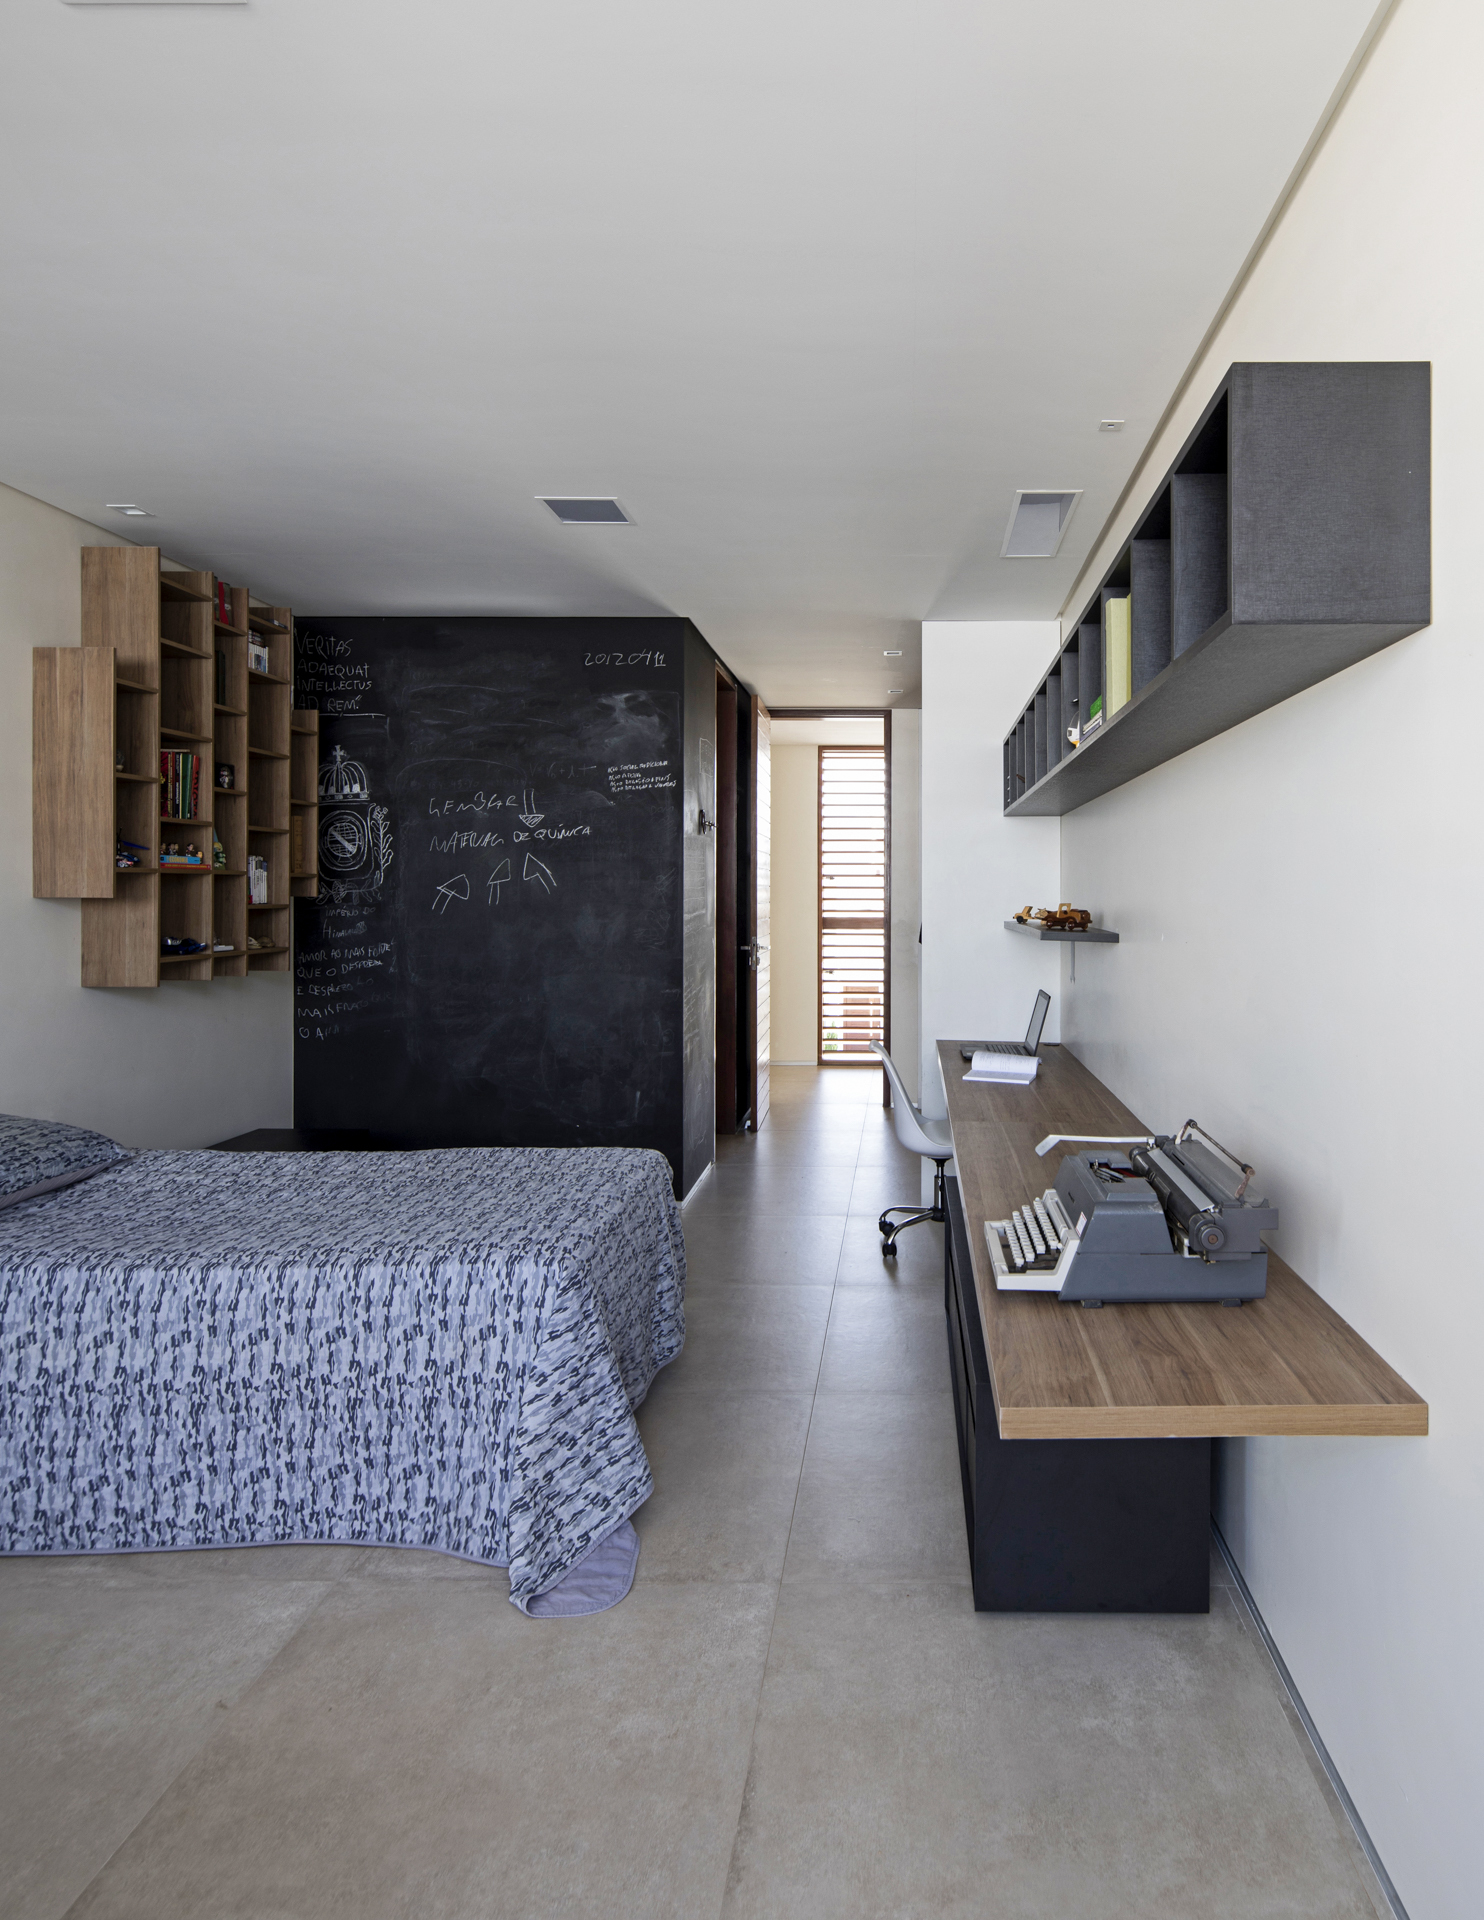 41_CASA_IF_-_Martins_Lucena_Arquitetos-40.jpg